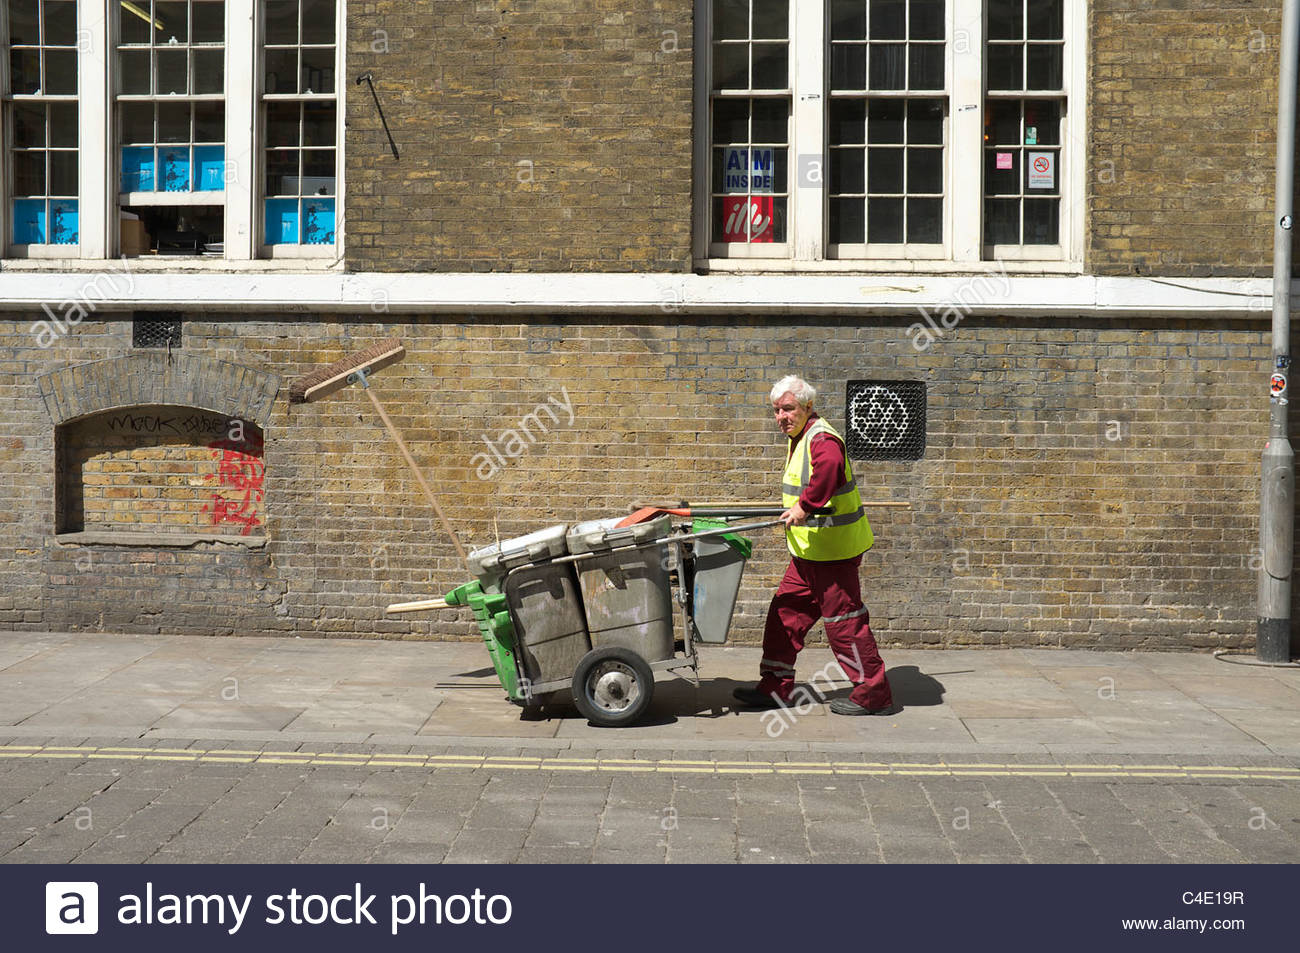 Municipal street cleaner with his mobile bin trolley, in Brick Lane, London, UK. Stock Photo